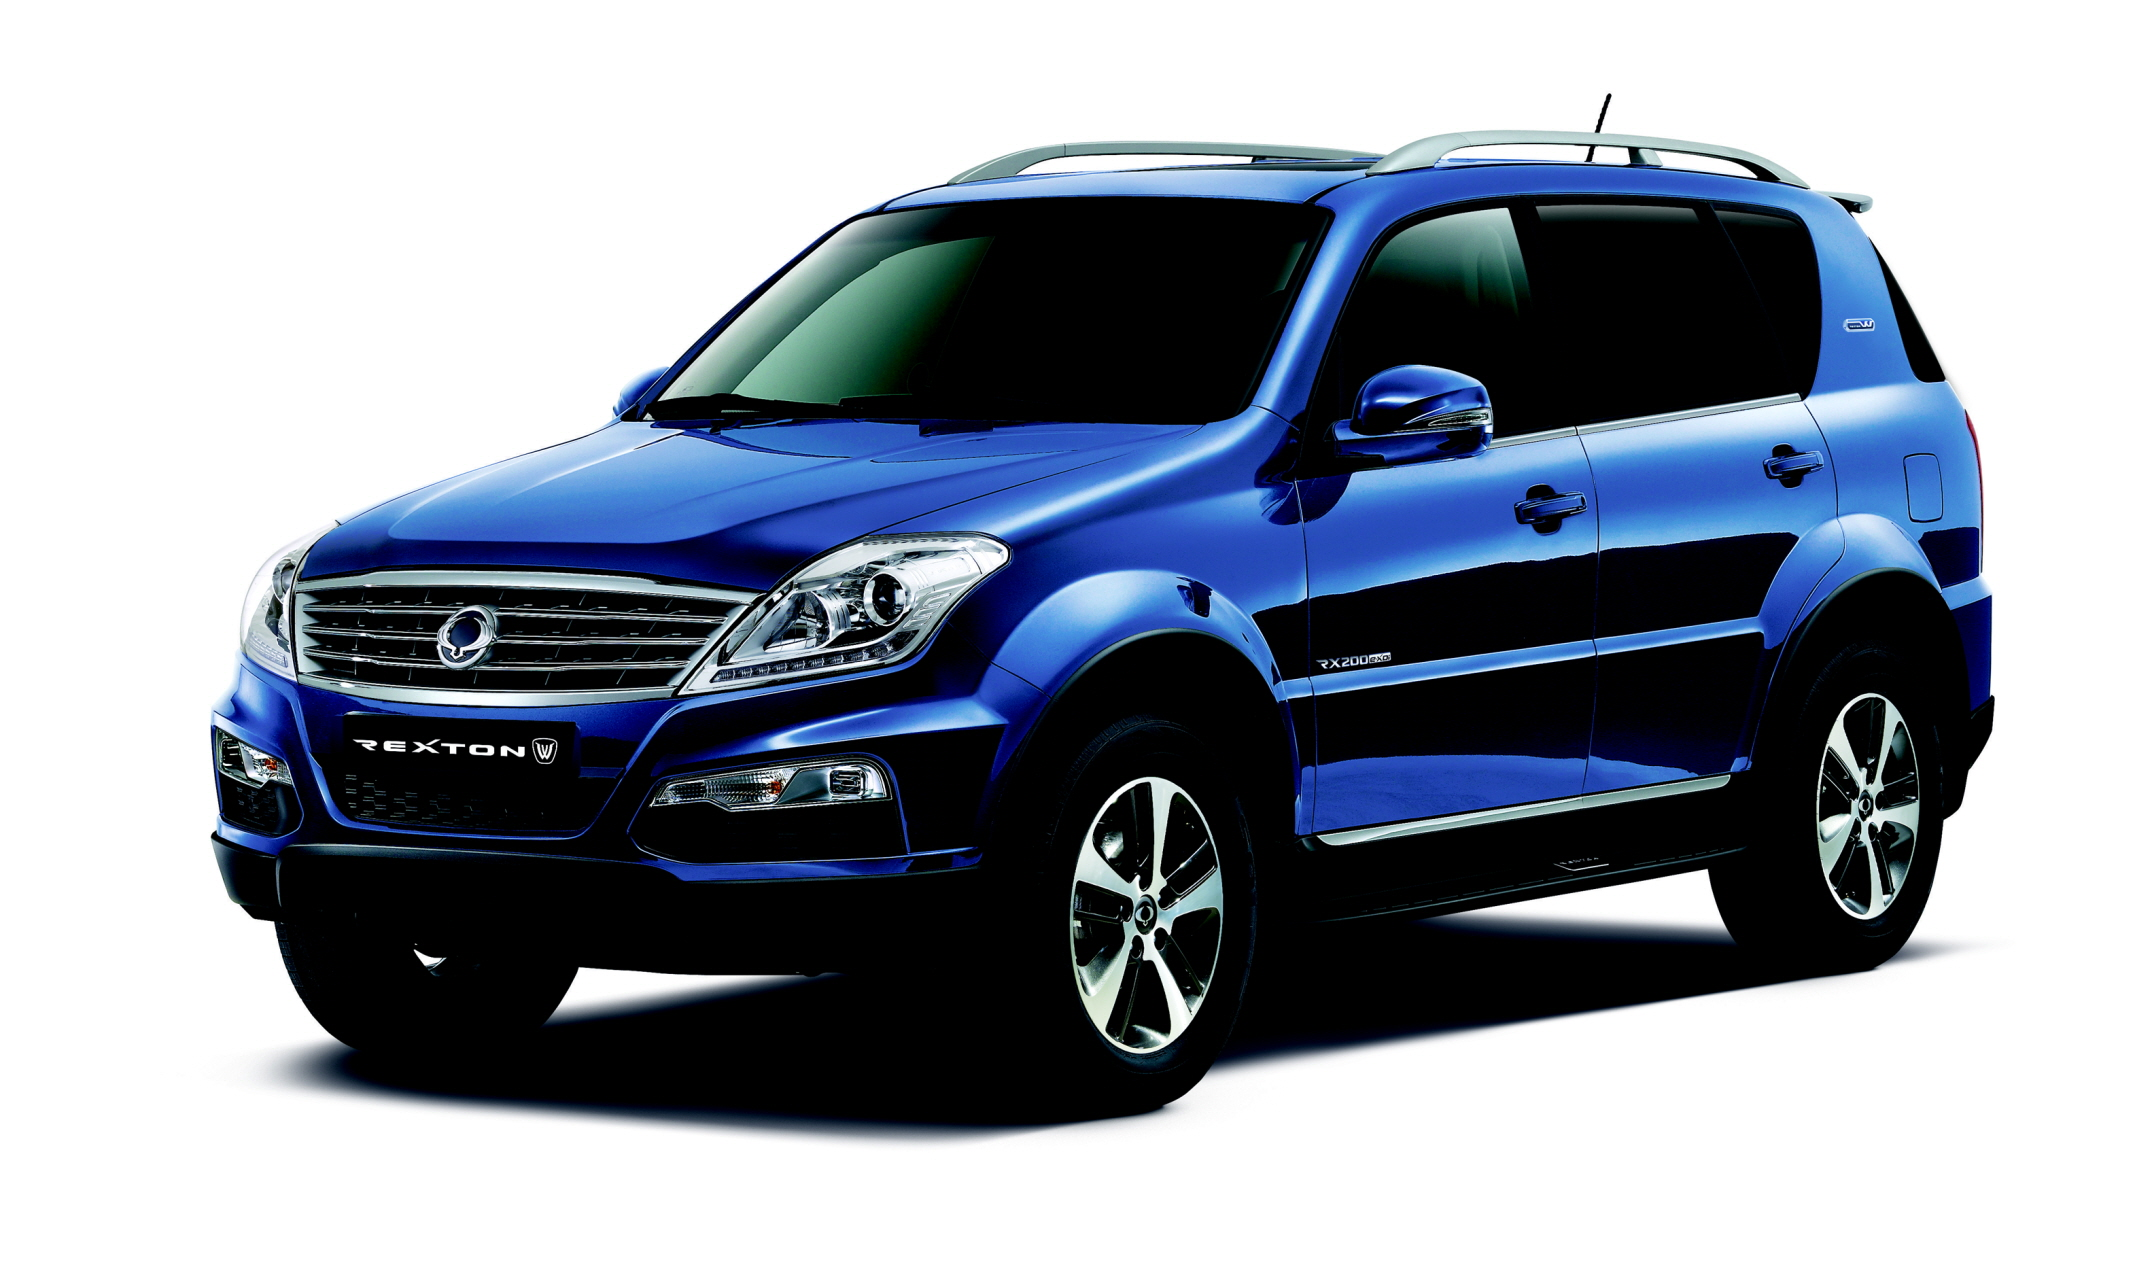 Rexton Dandy Blue